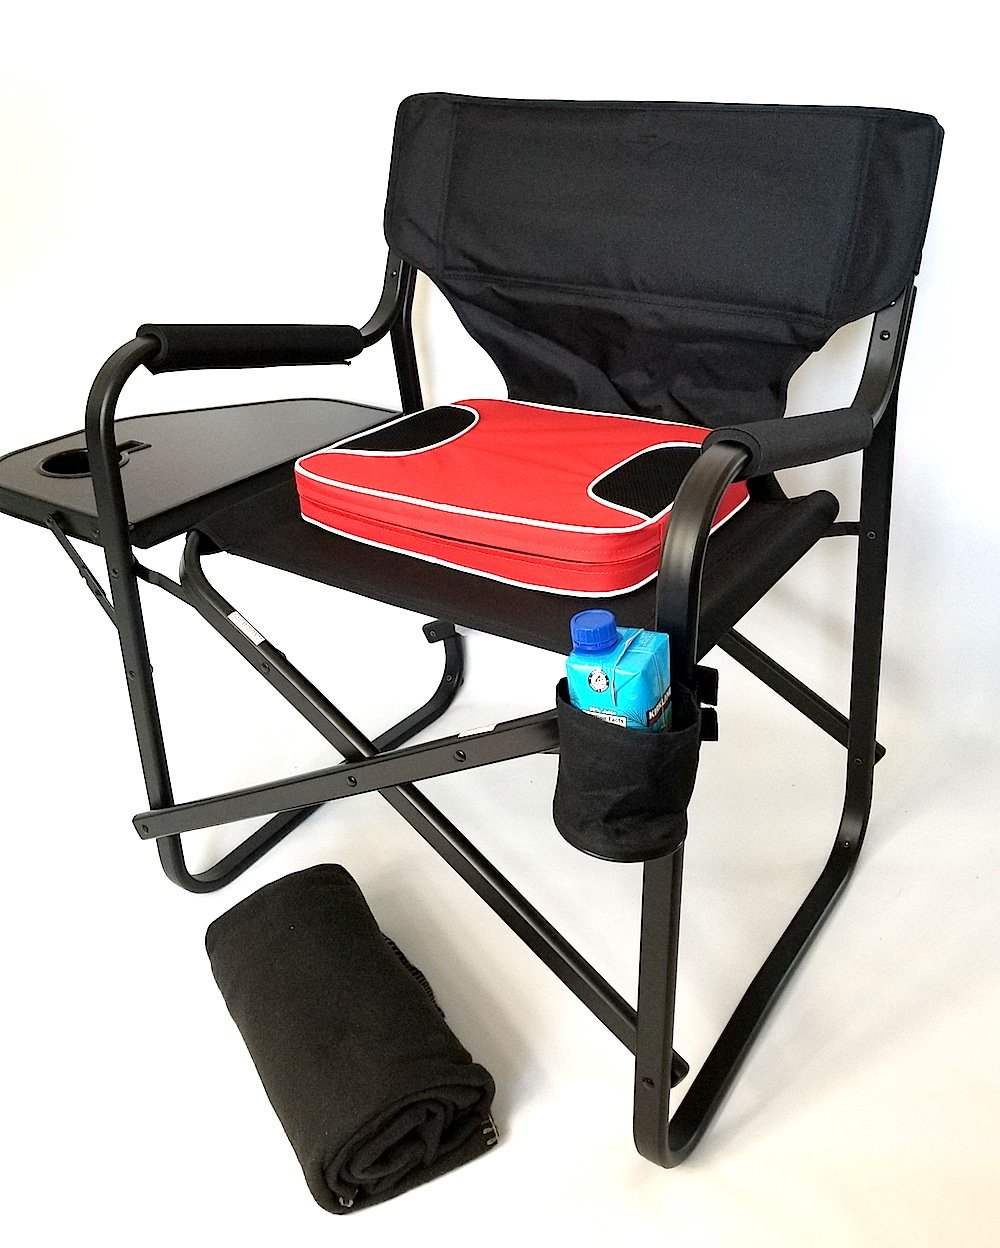 HEAVY-DUTY GRAND DADDY XL CAPTAIN Chair with UNIQUE REMOVEABLE SEAT CUSHION FOR EXTRA COMFORT, Side Table & Cup Holder-10 Years Warranty PRODUCT--SAME DAY SHIPPING by Oasis